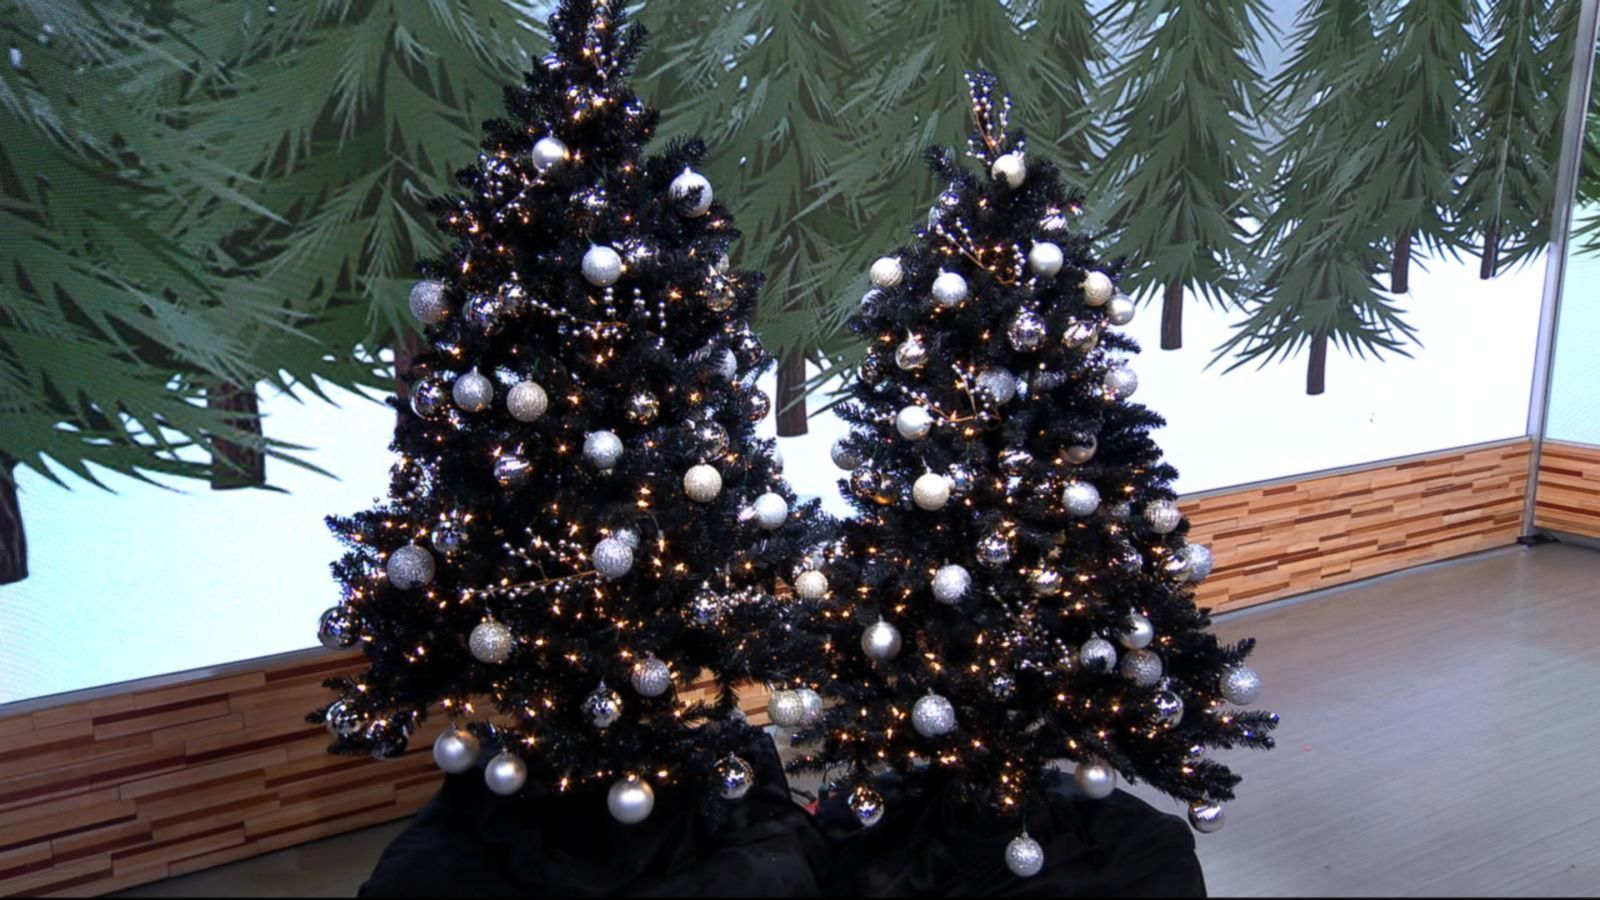 Black Christmas trees are a hot holiday decorating trend (really) - ABC News